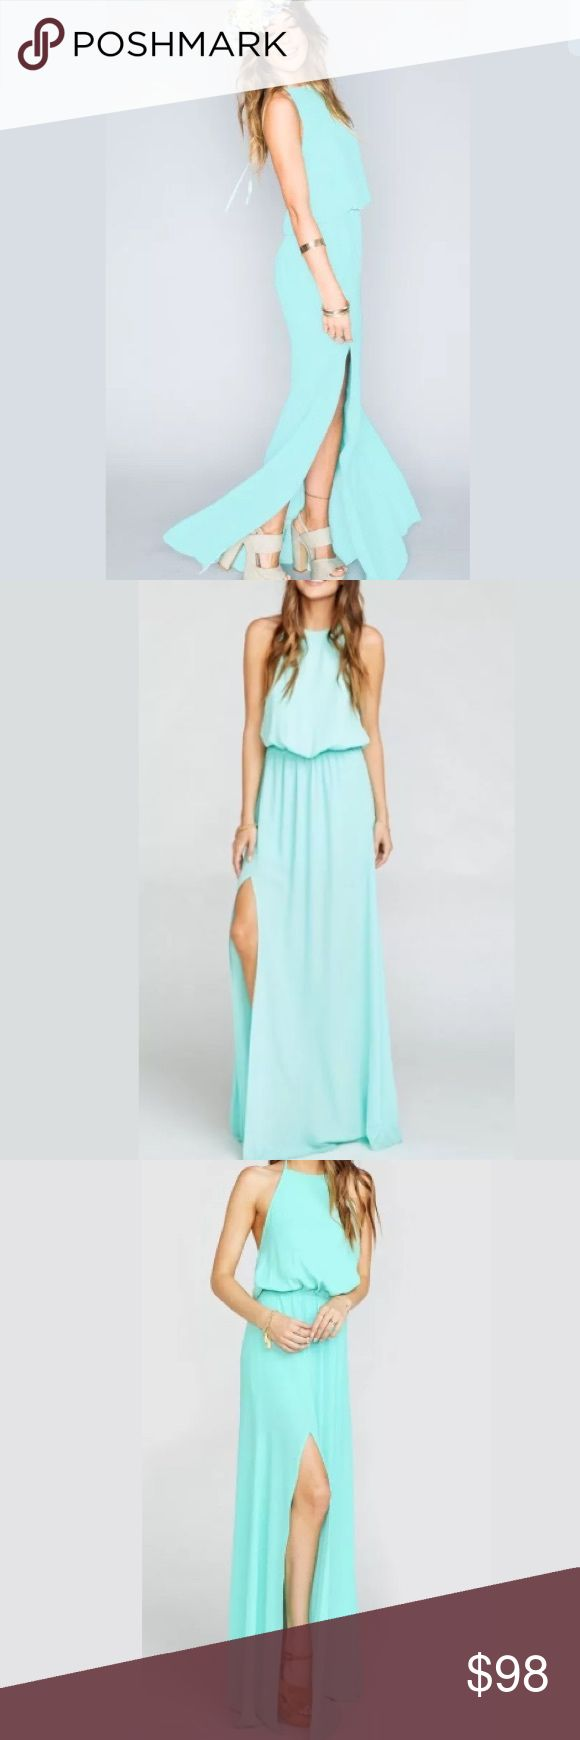 NWT Show Me Your Mumu Teal Halter Maxi Dress Gorgeous teal maxi halter maxi dress by Show Me Your Mumu. Has Slits on the side.   *100% Poly  *Ties at neck  *Elastic Waist  *Lined as a mini dress  *Mumu Bridesmaid dresses are standard 'long' bridesmaid length. They will fit most heights and heels, and are meant to be tailored to any length.   There may be a slight variance to color in person due to screen resolution. Show Me Your MuMu Dresses Maxi